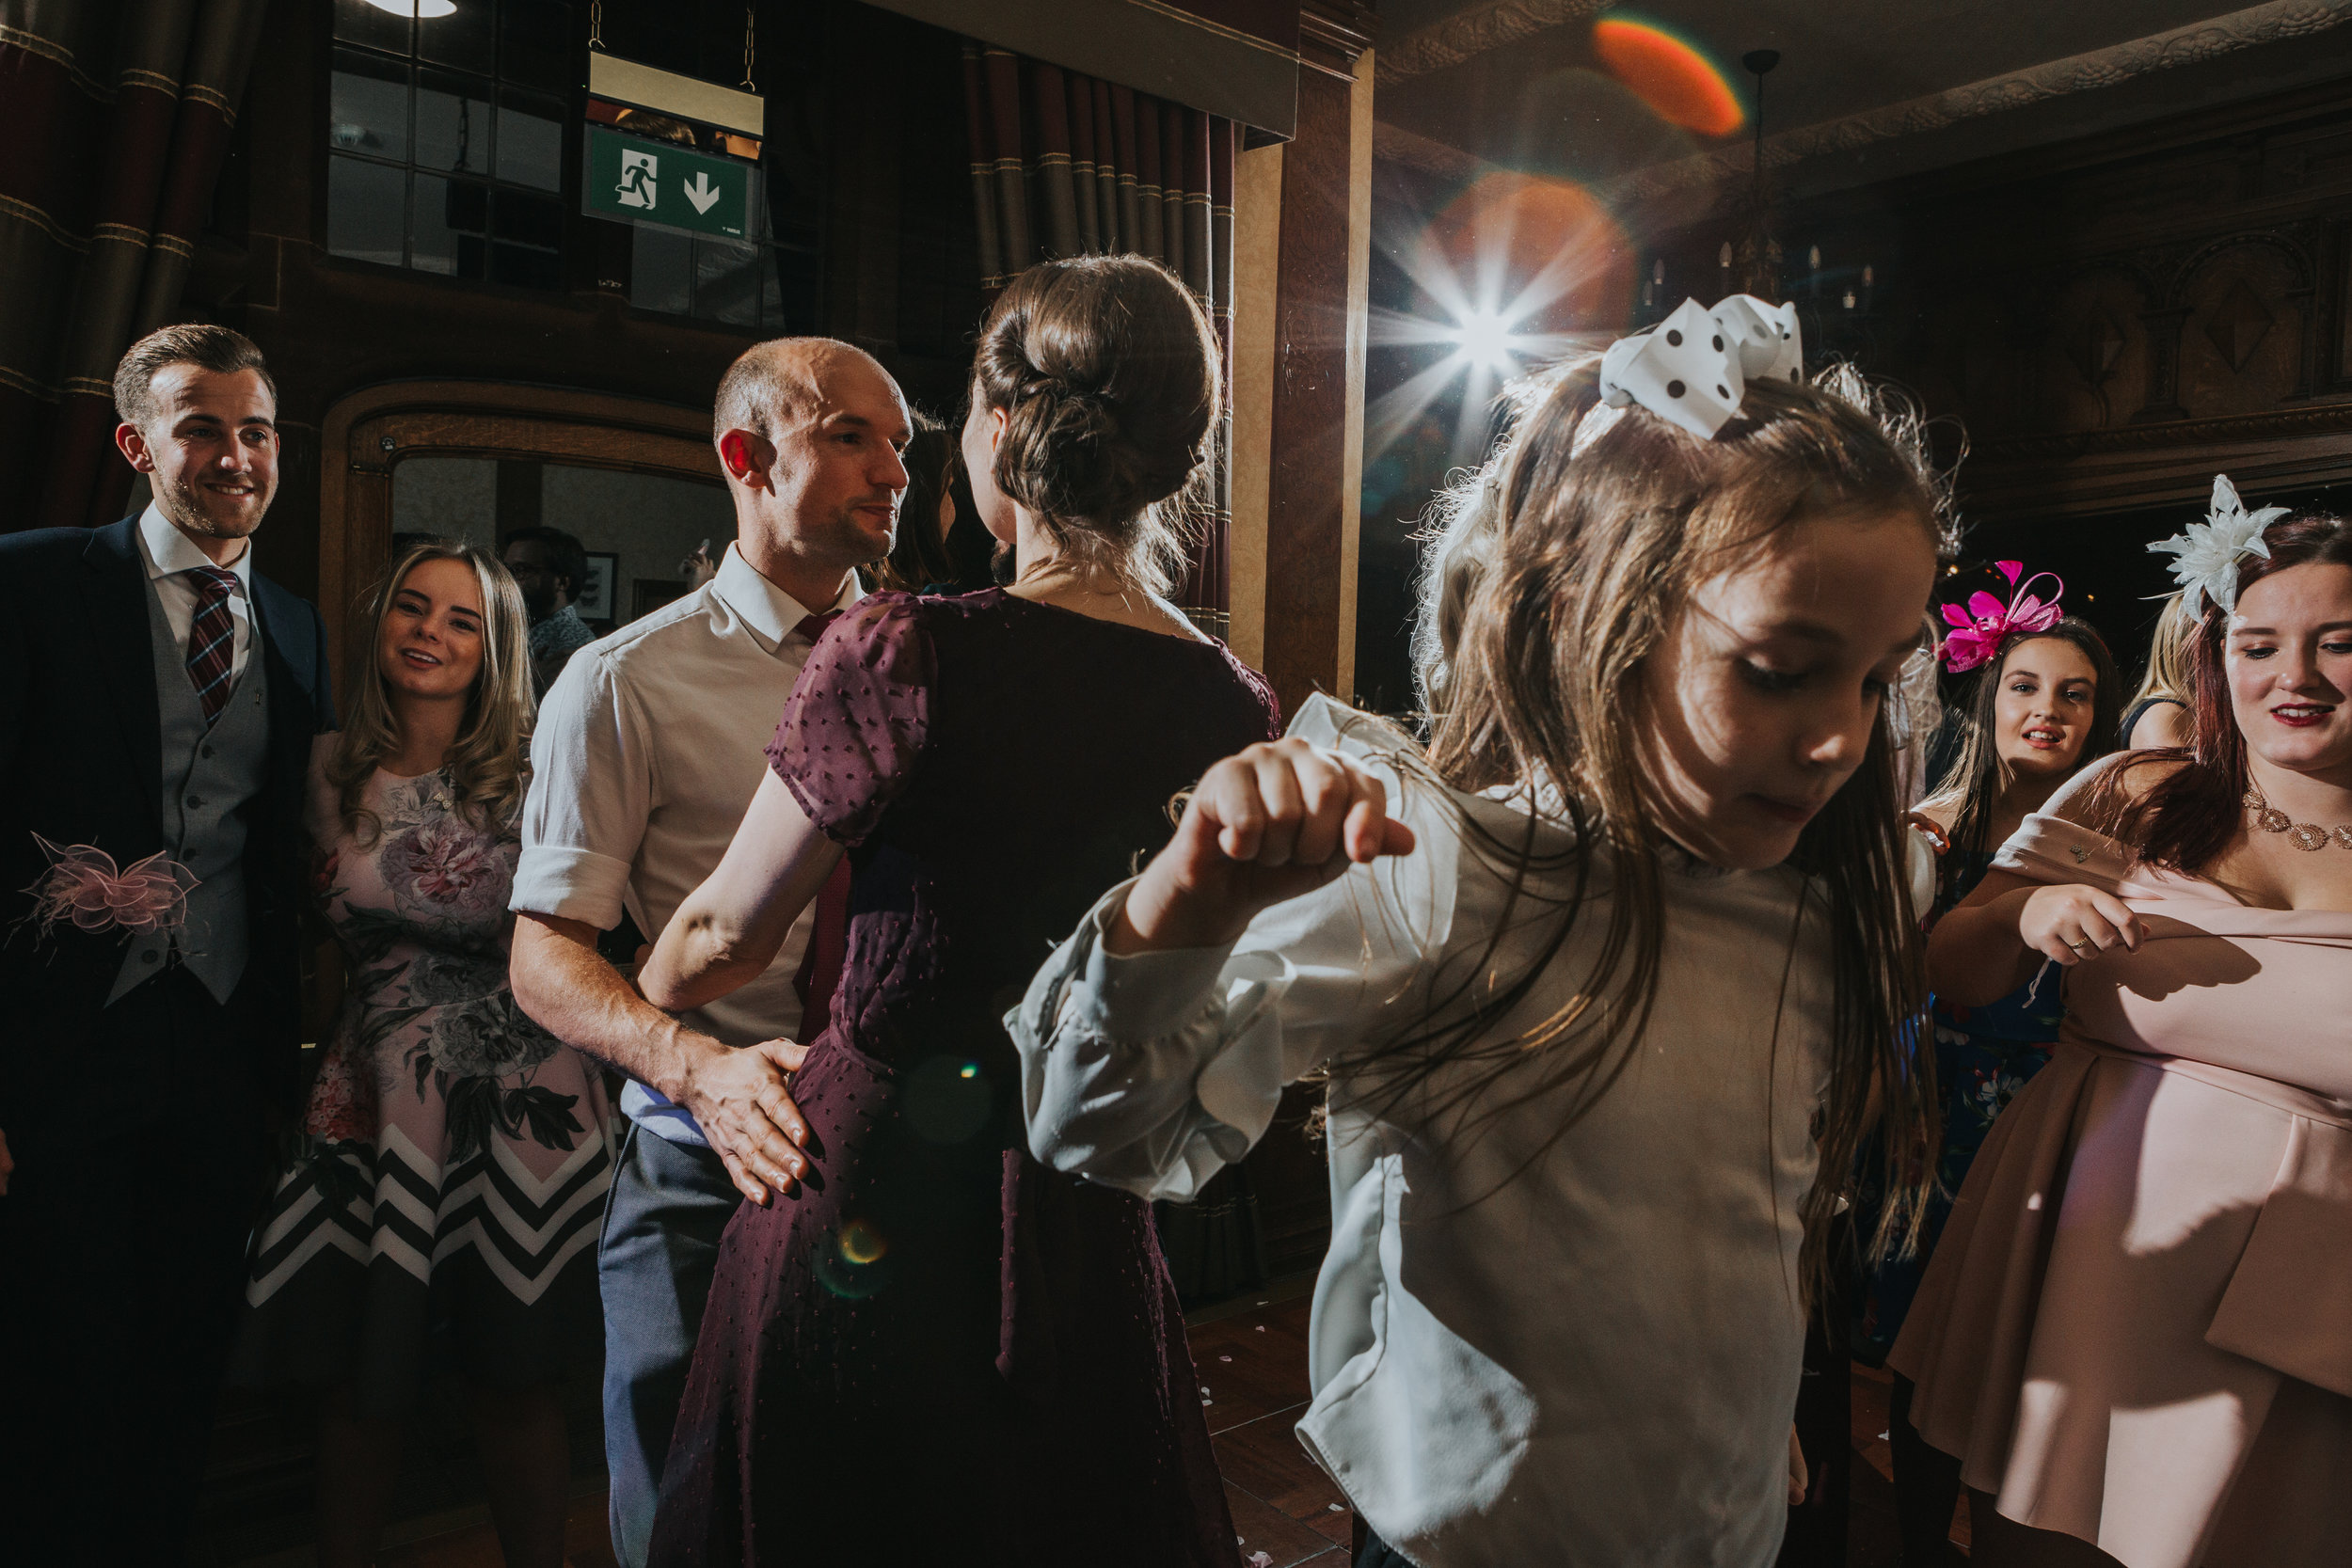 Wedding guests hit the dance floor, a little girl jumps up and down as wedding guests dance behind her.